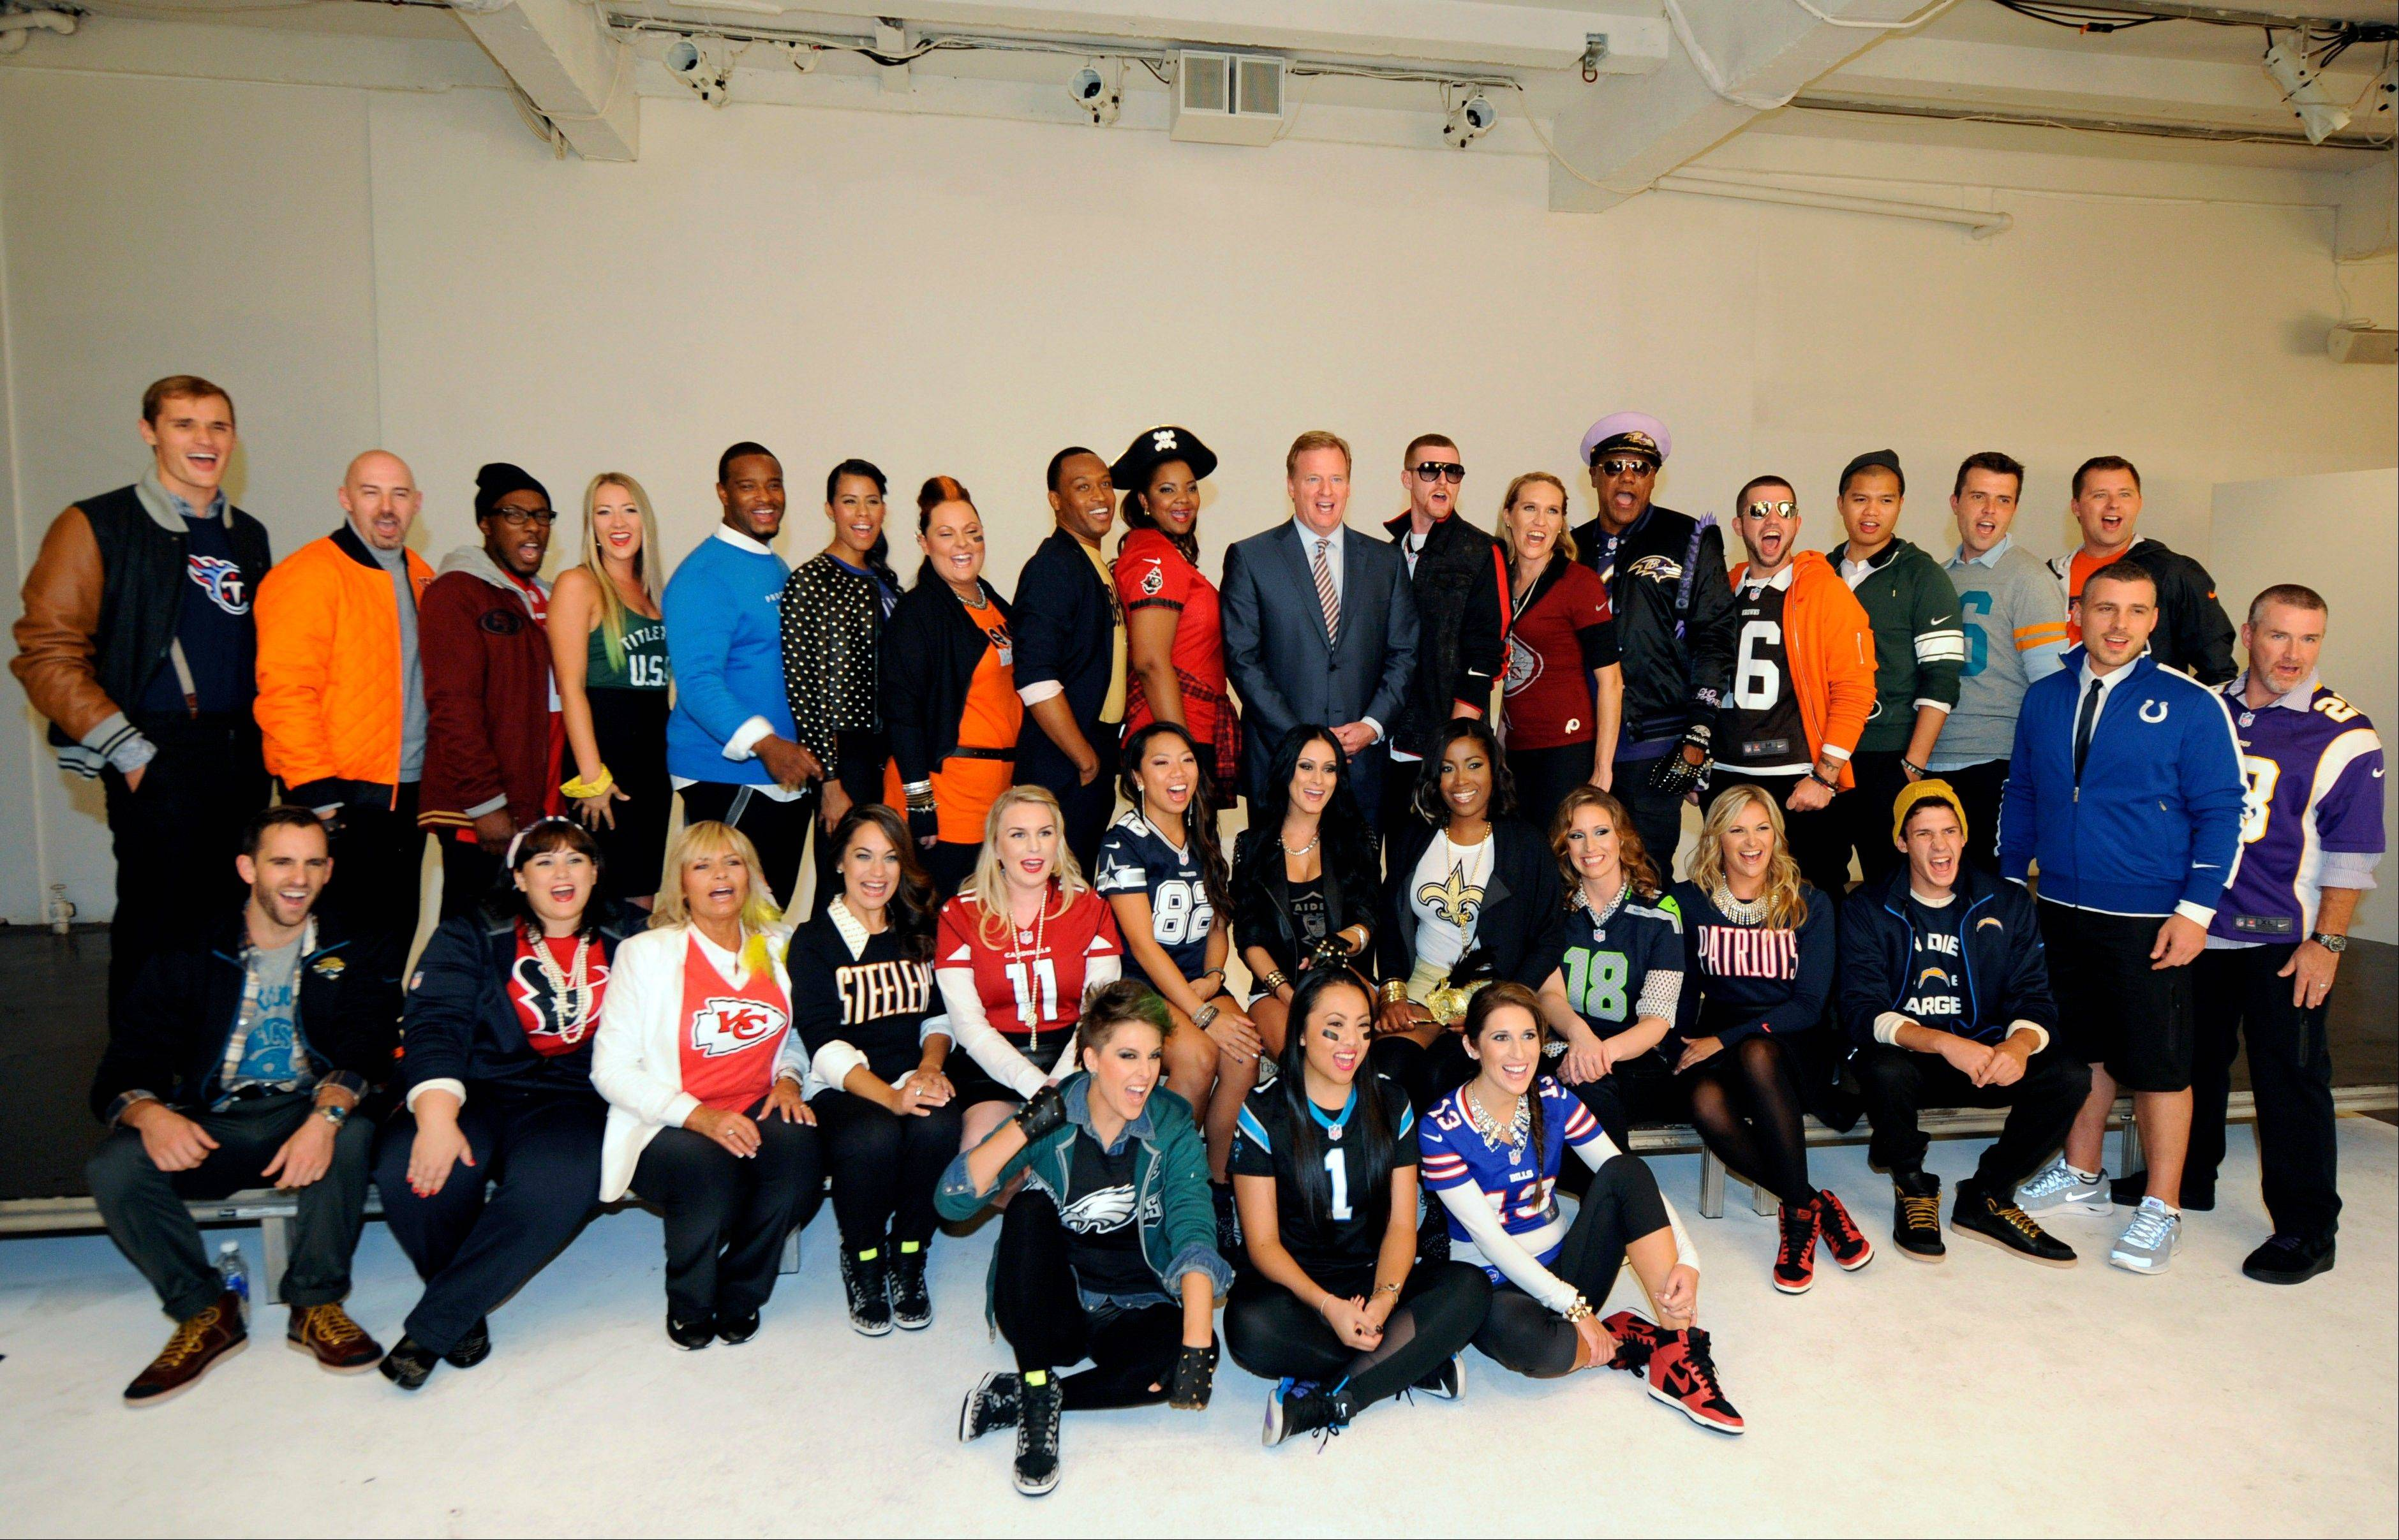 Commissioner Roger Goodell, center, is surrounded by one fan from each of the league's 32 teams who were chosen to take part in the NFL's Back to Football Photo Day in New York.